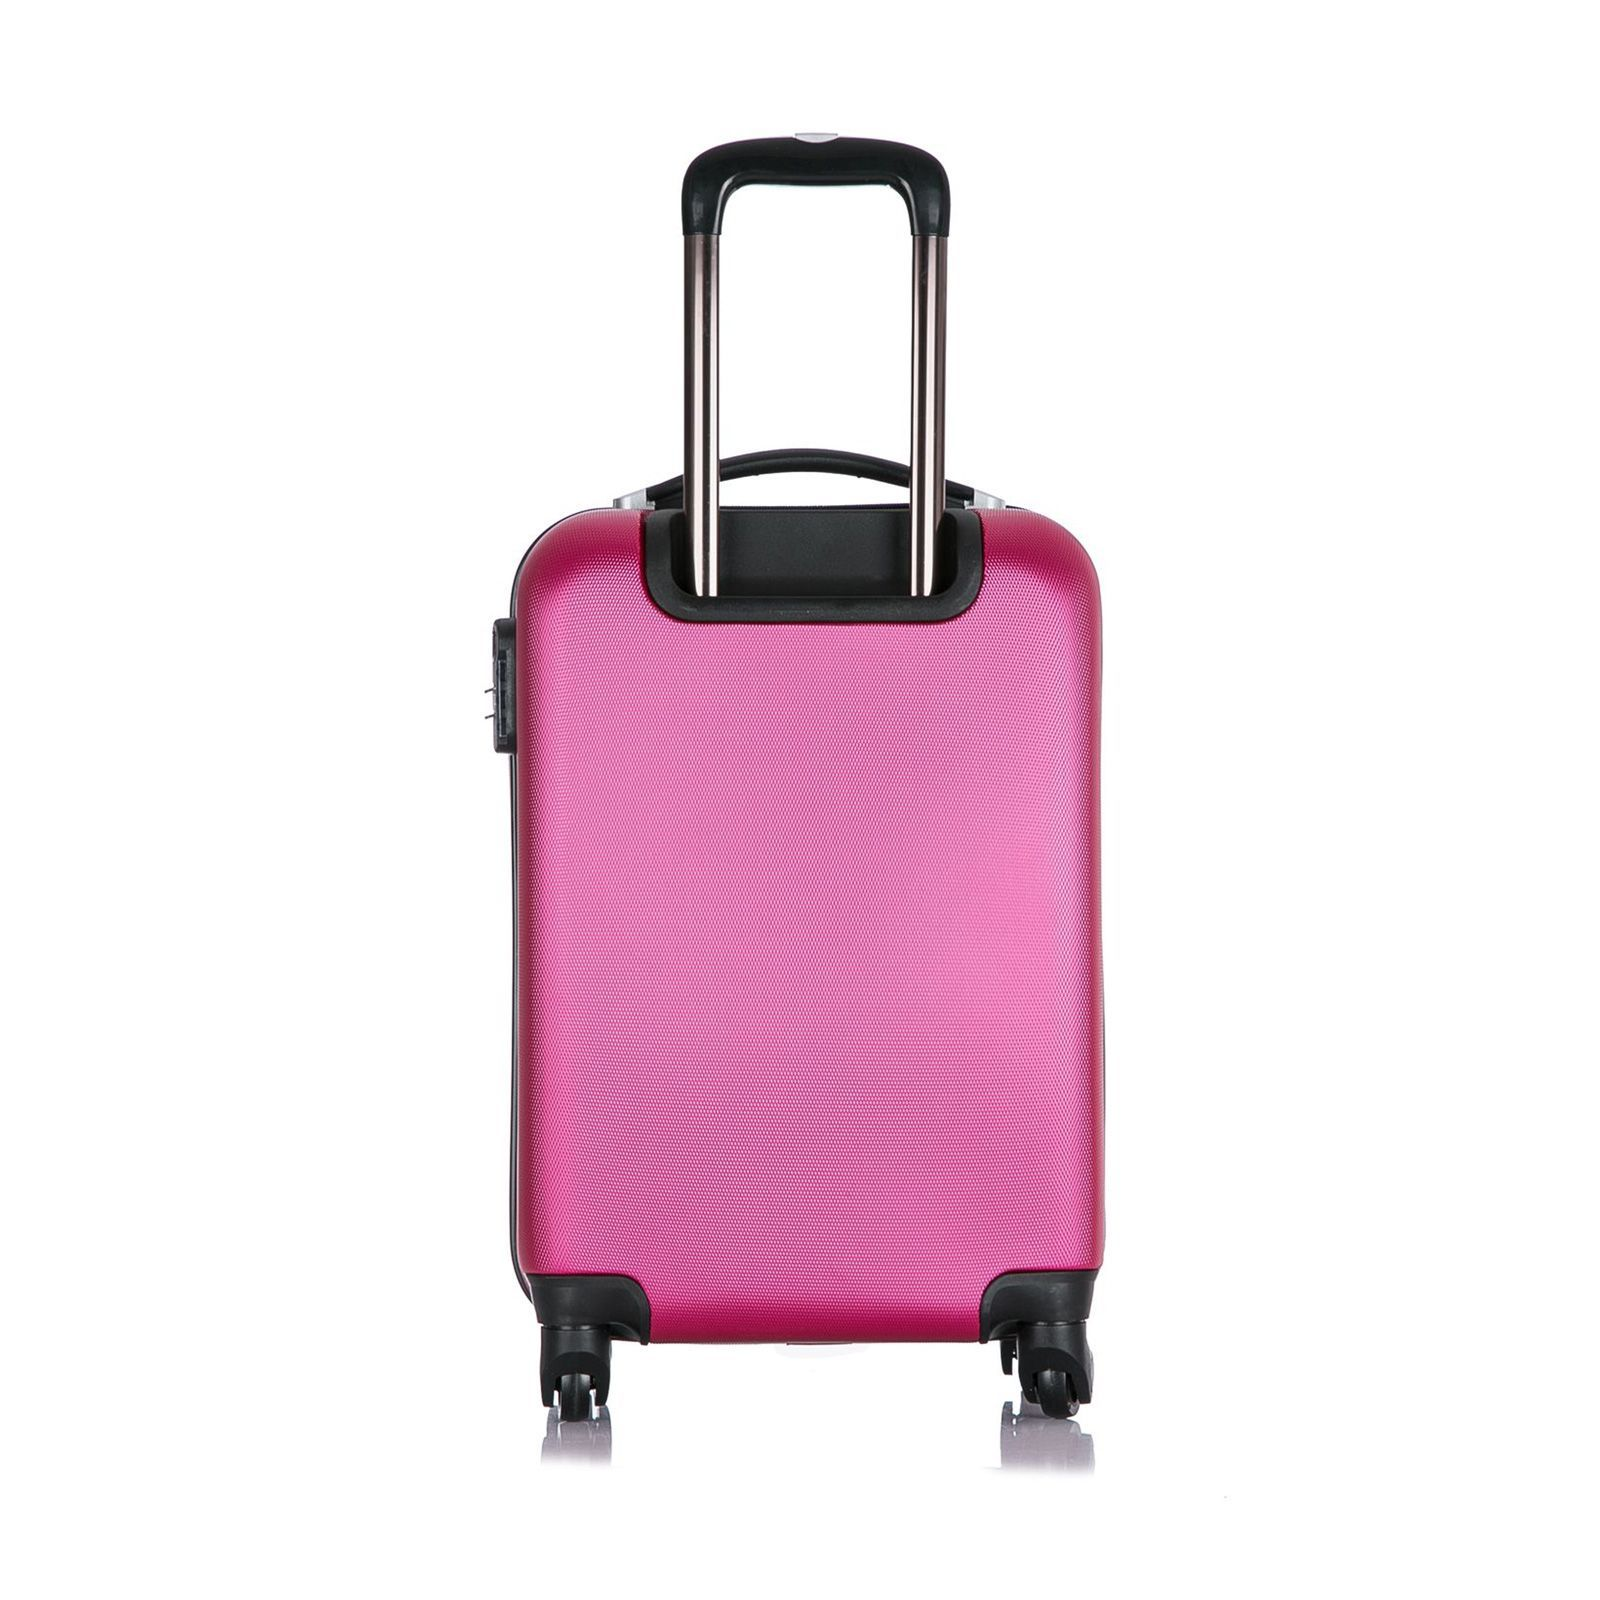 Rose Alice Les Cabine Bombes P'tites Brandalley Valise T6nX8xEn